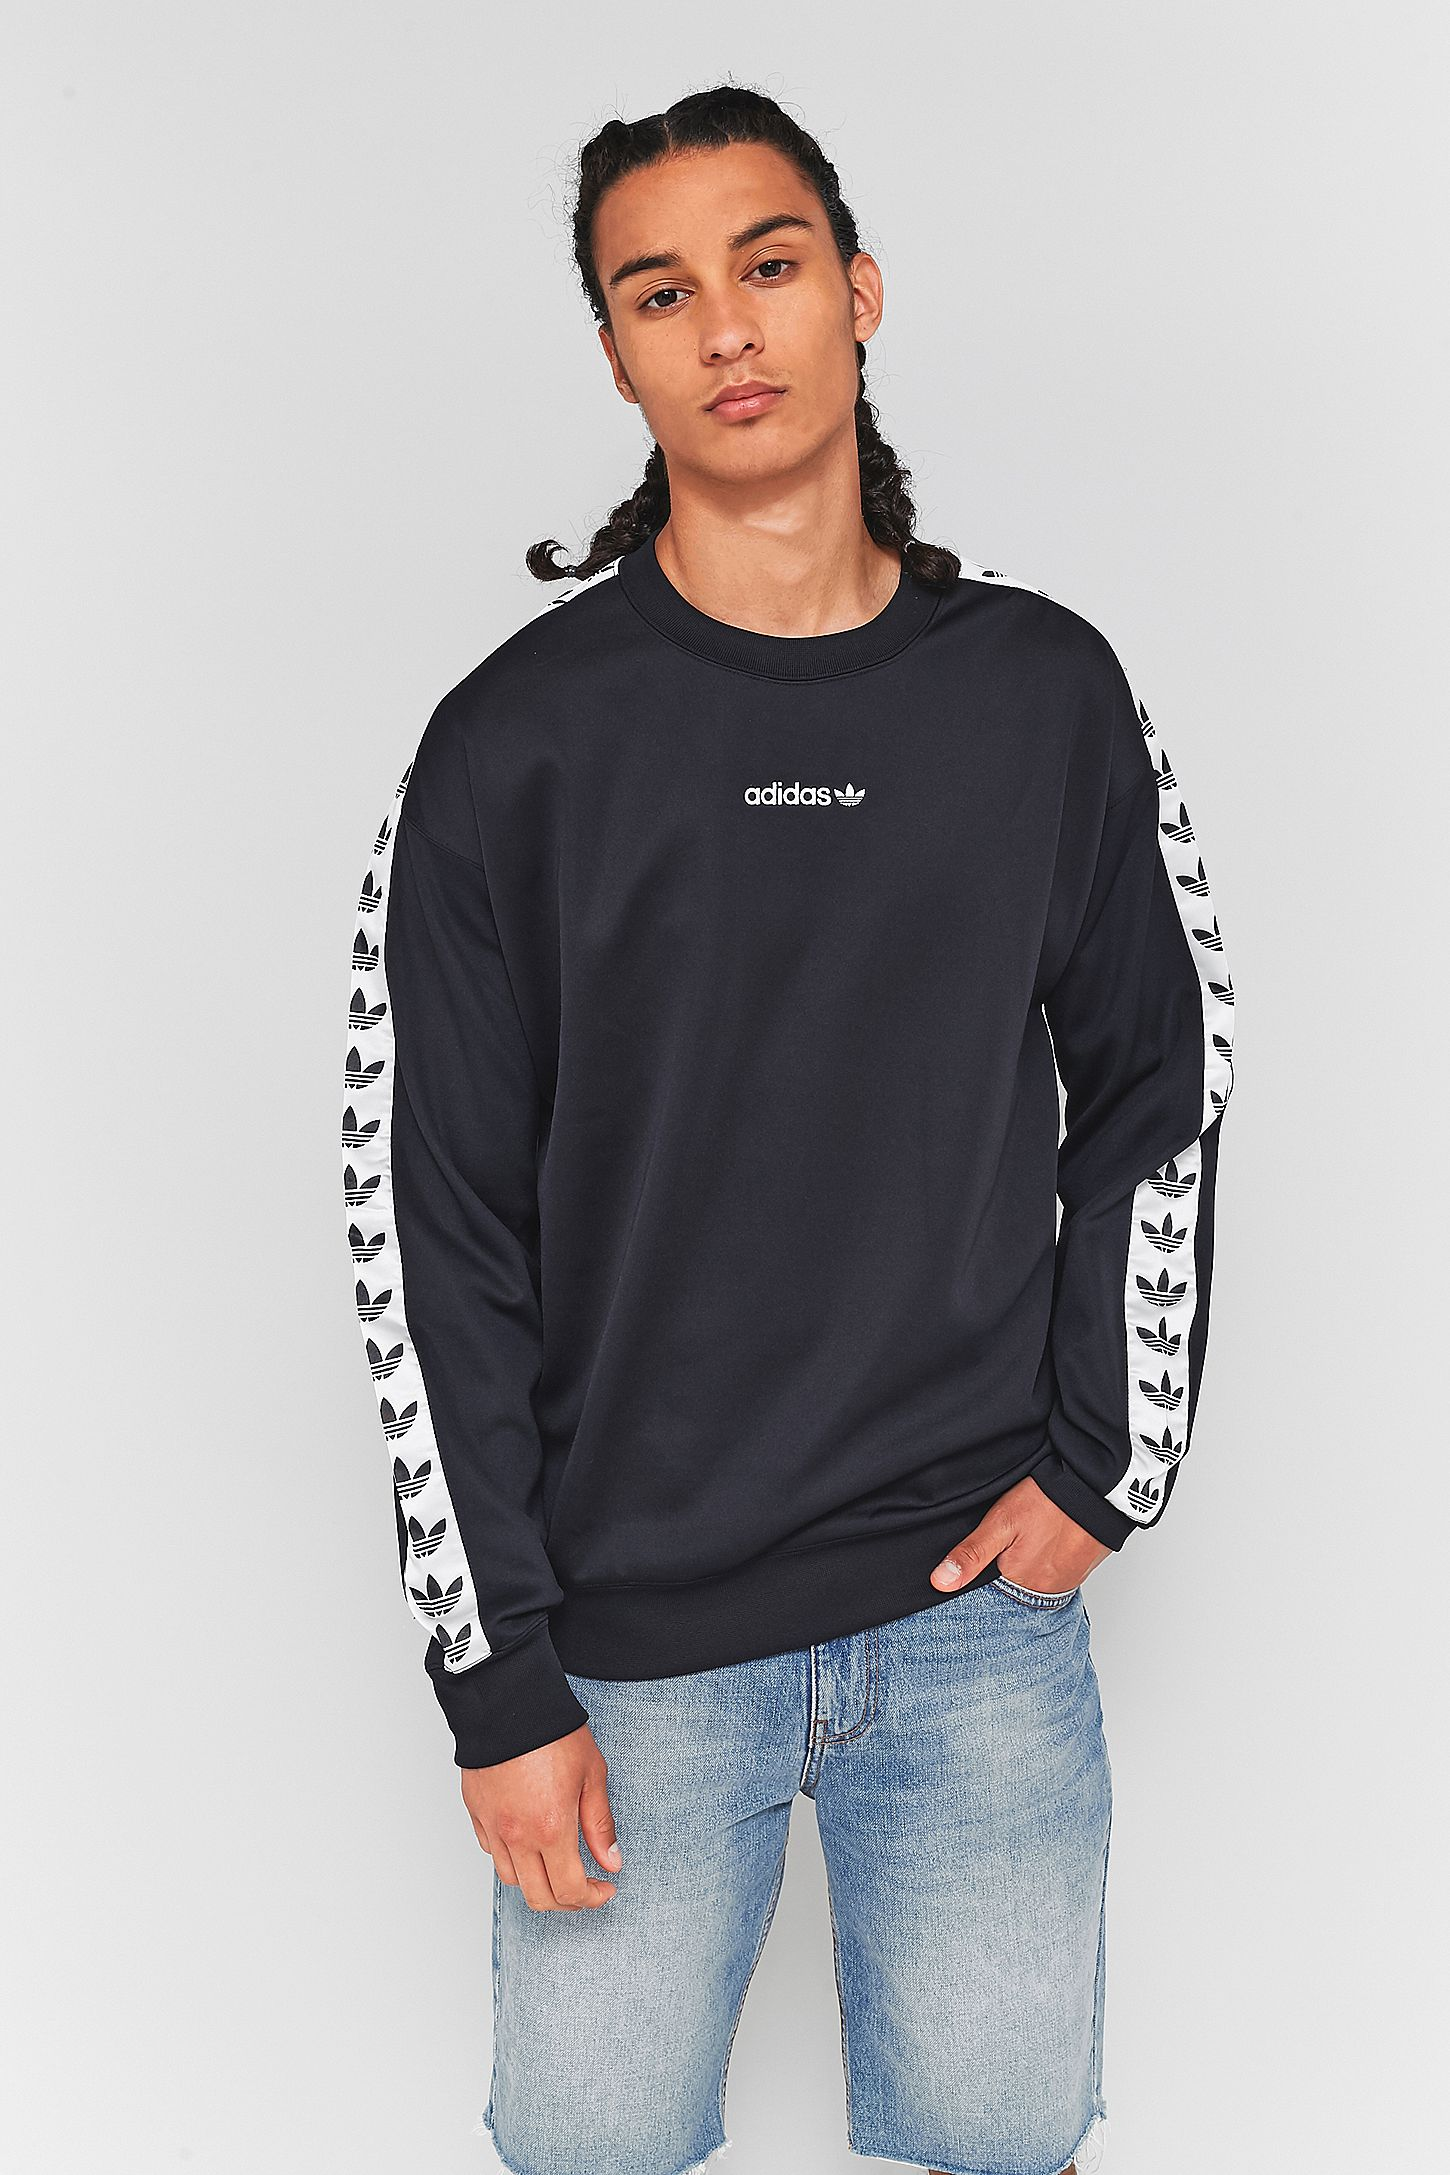 adidas TNT Black and White Taped Crewneck Sweatshirt  70d42fde44